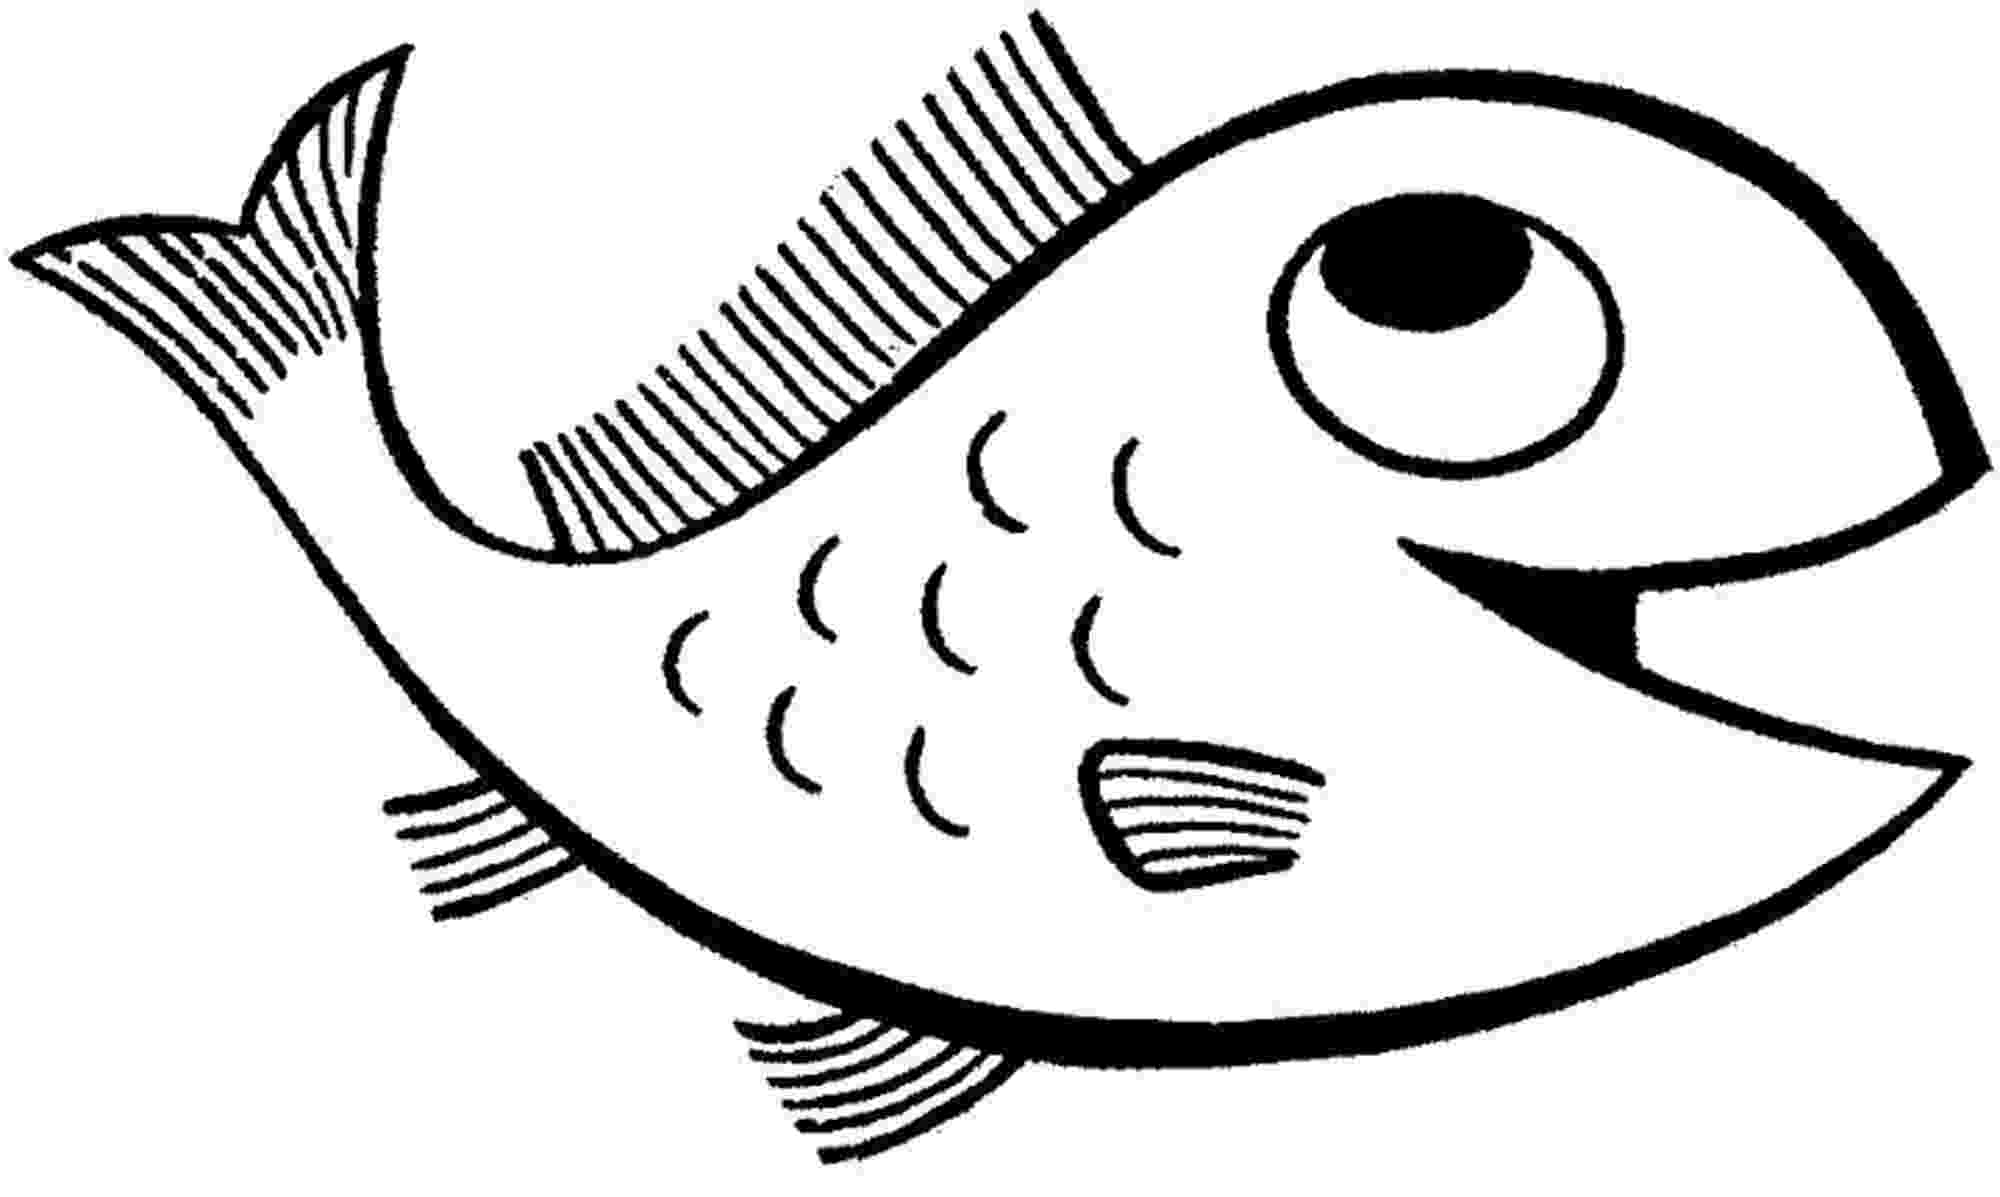 coloring picture fish fish coloring pages coloring pages to download and print fish coloring picture